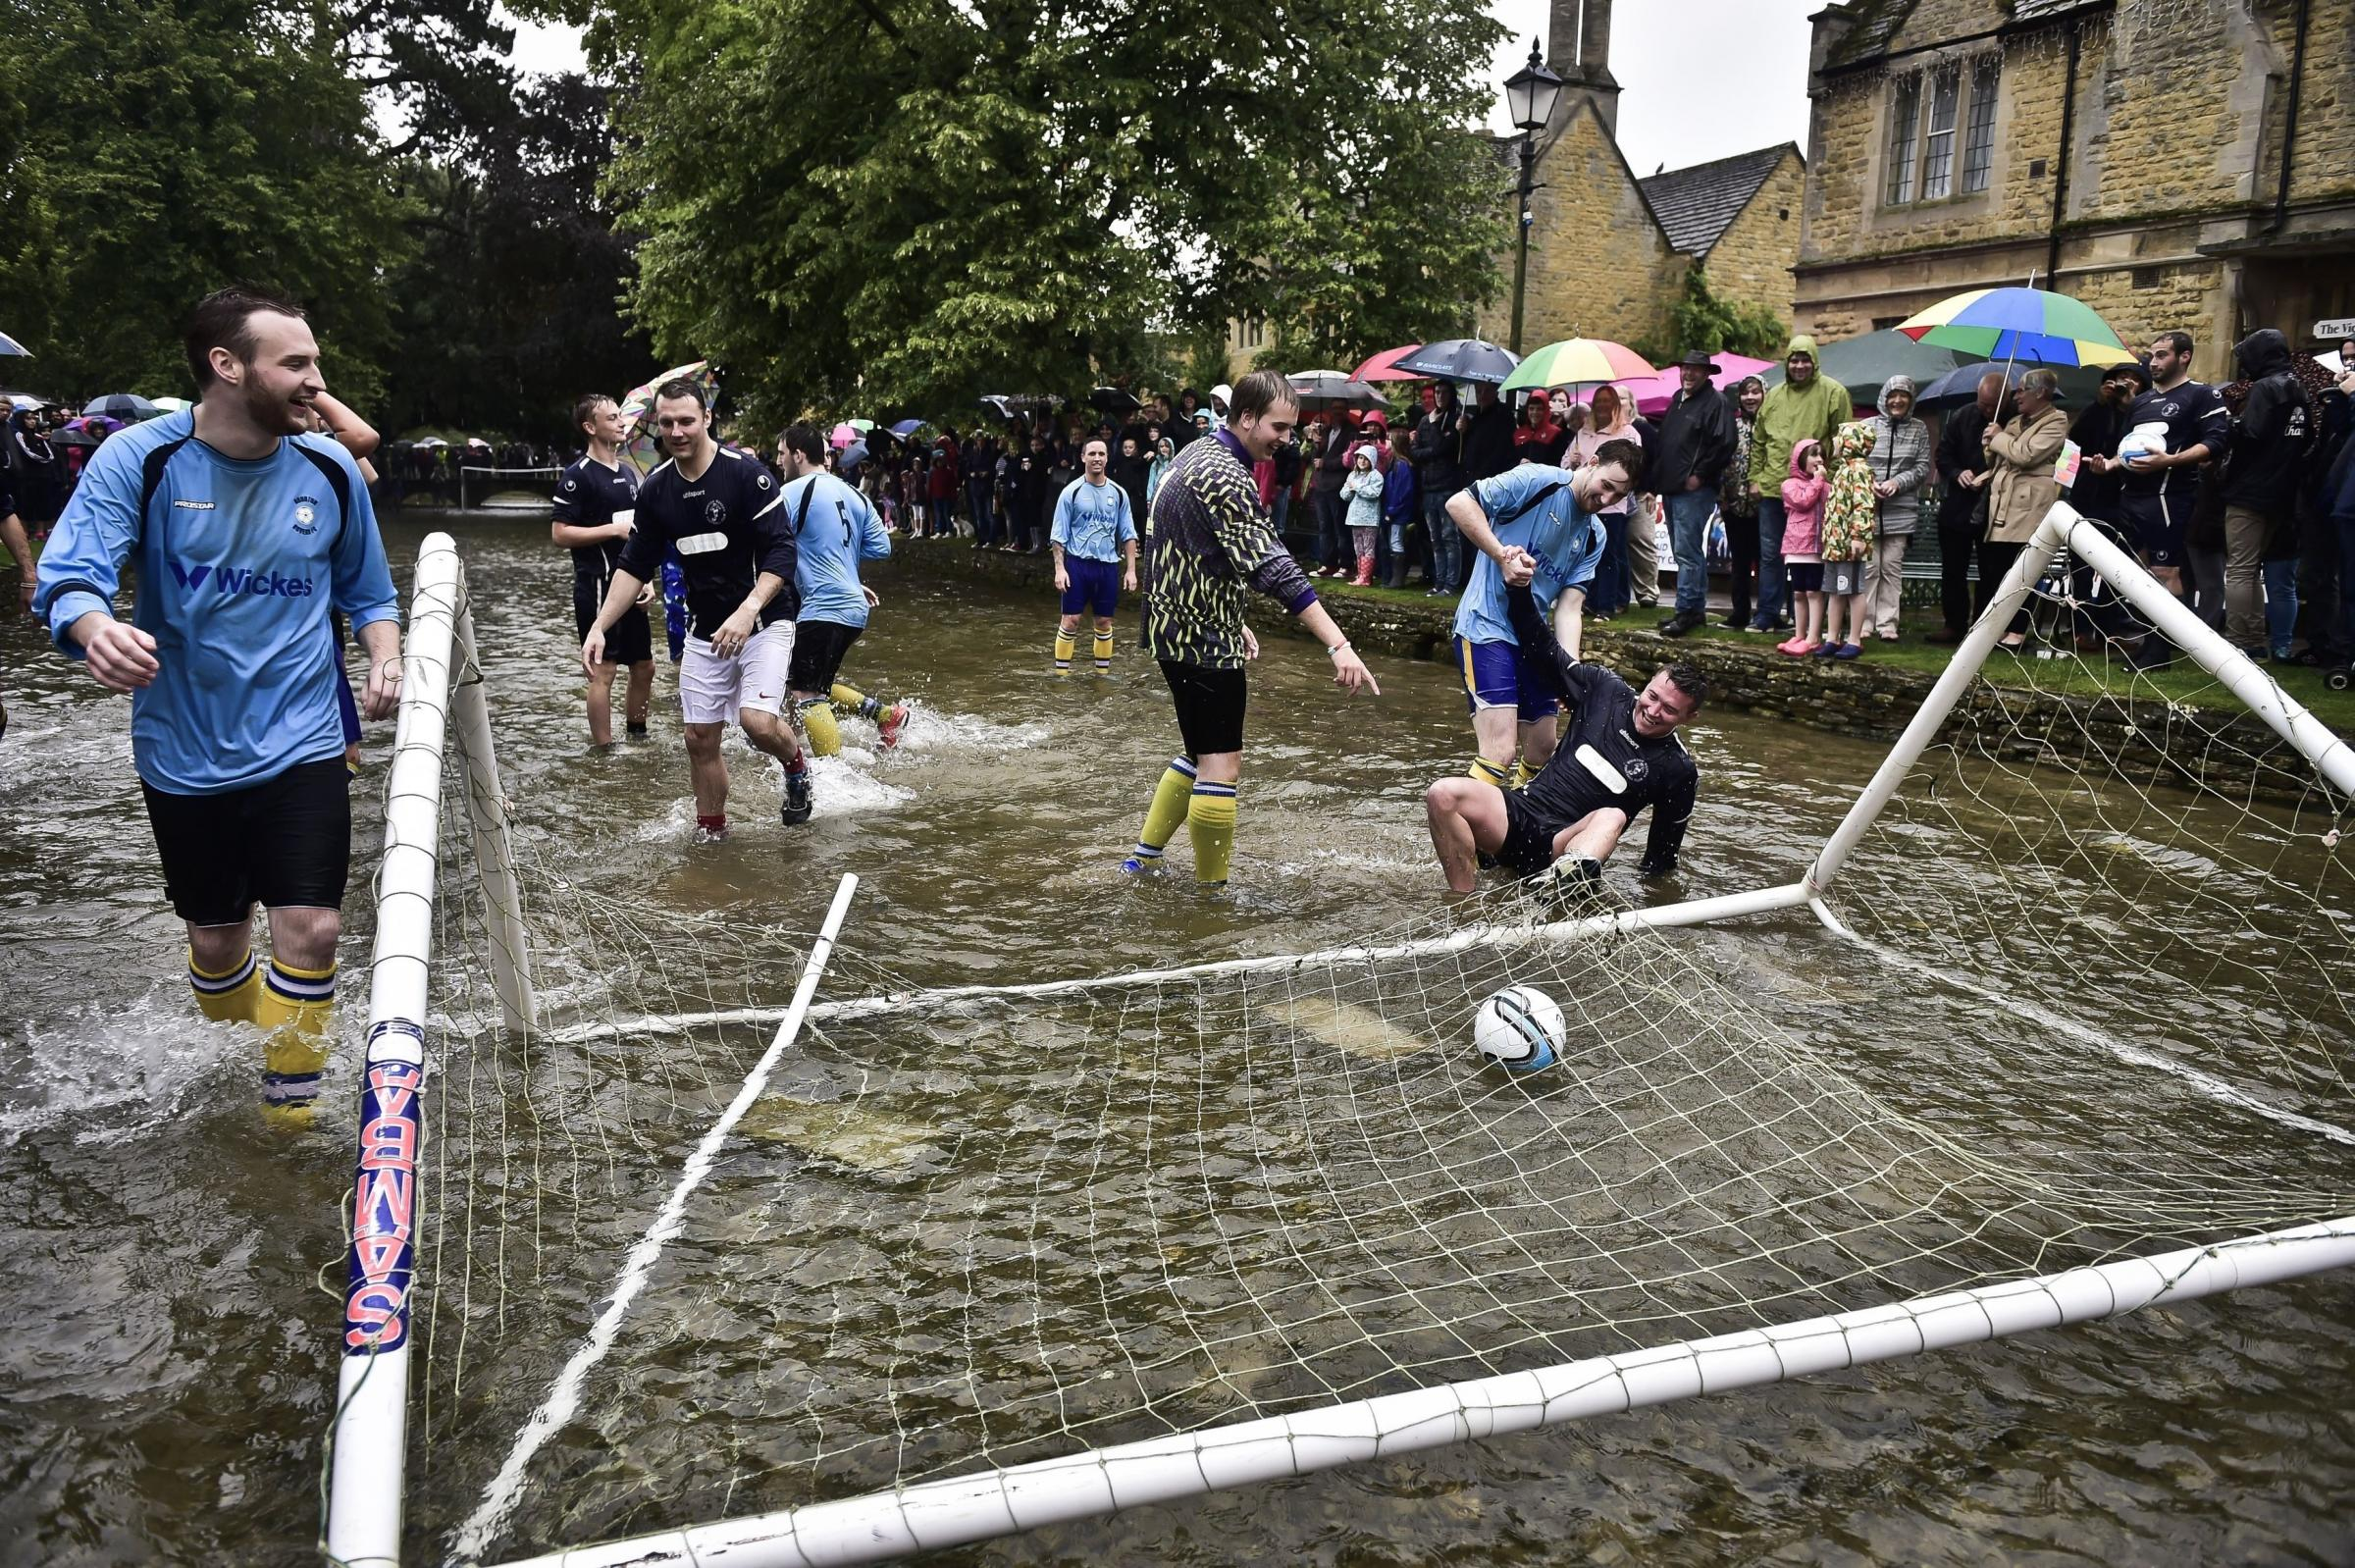 Footballers wade in to raise funds